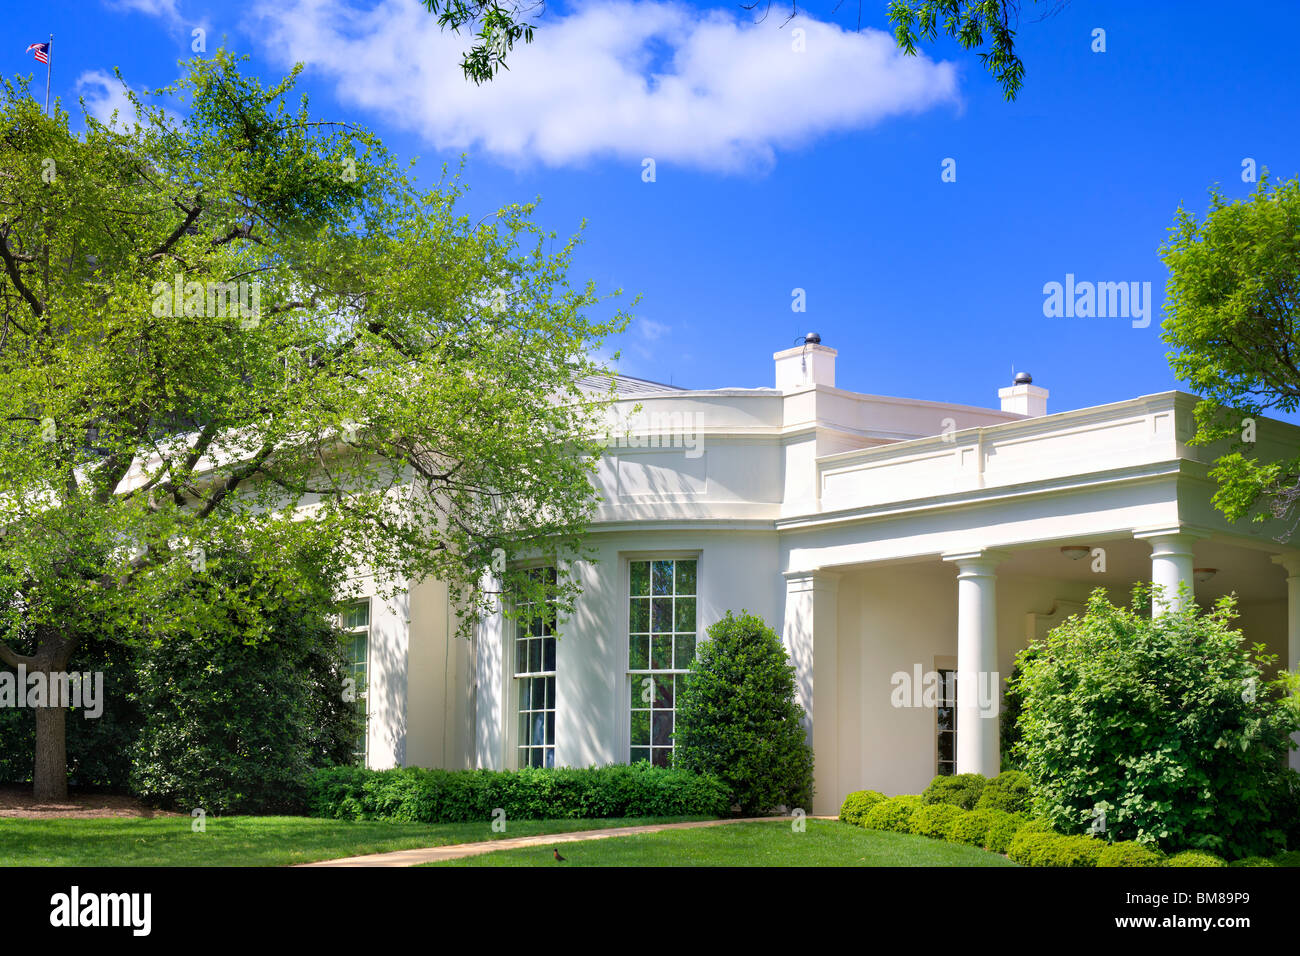 The Oval Office Exterior With Garden The West Wing Of The